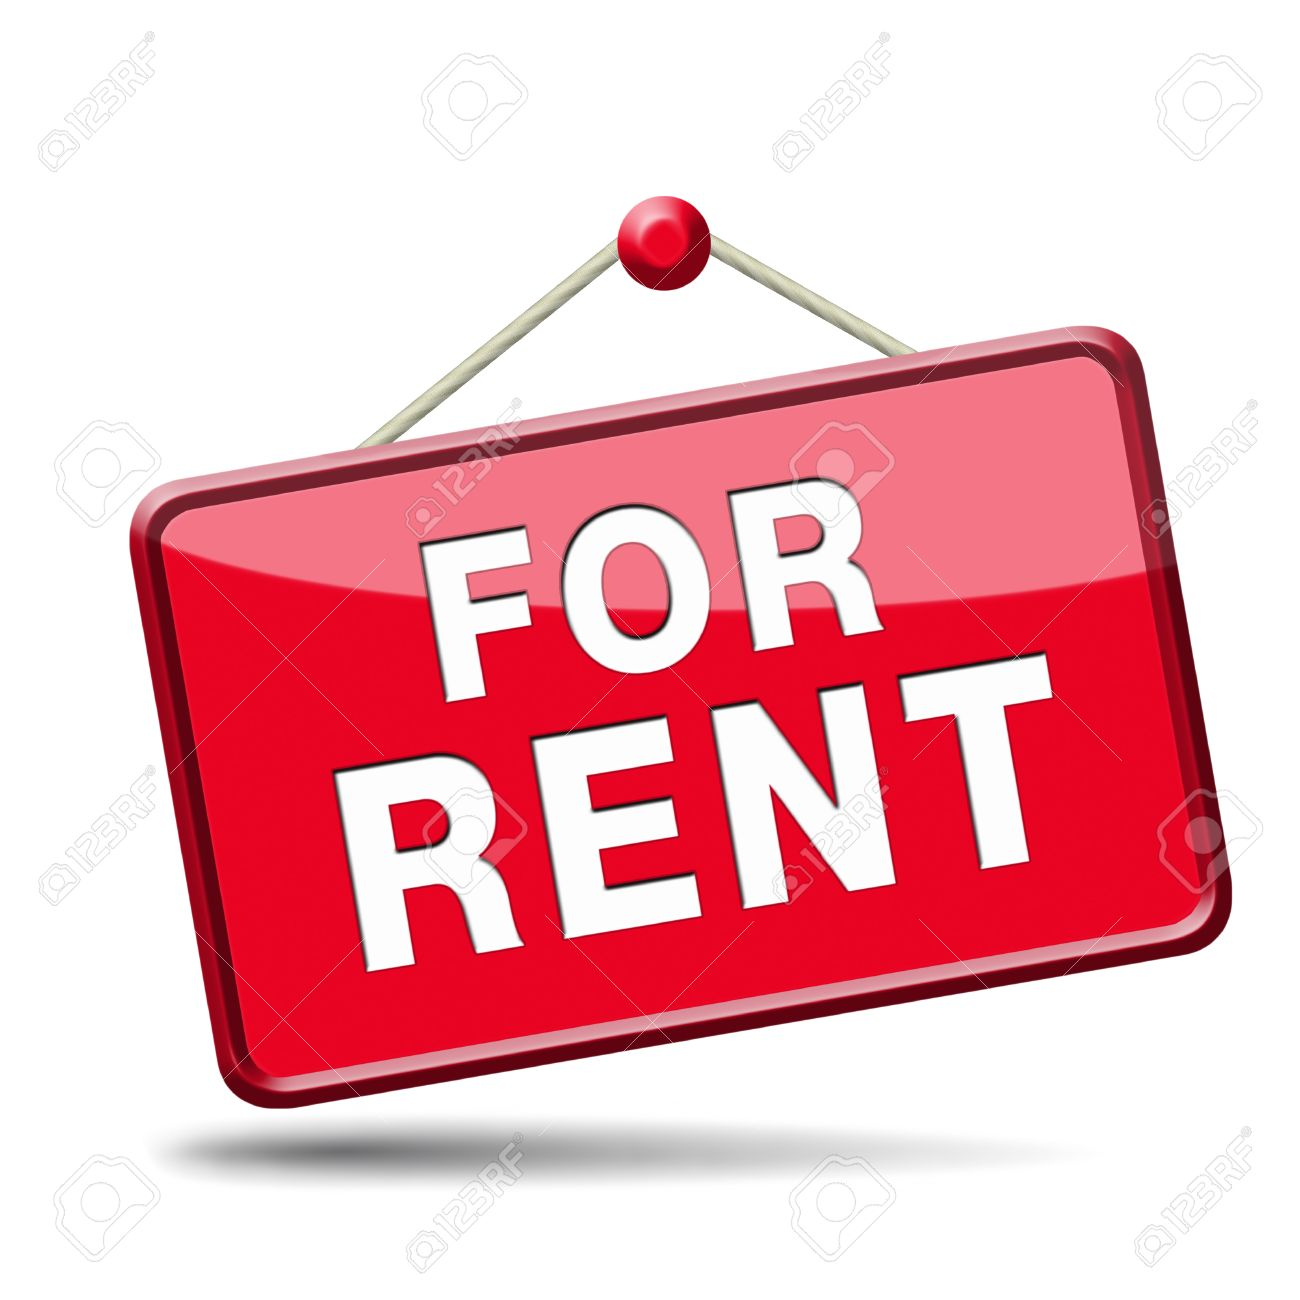 apartment or house for rent banner, renting a room or flat or other real  estate